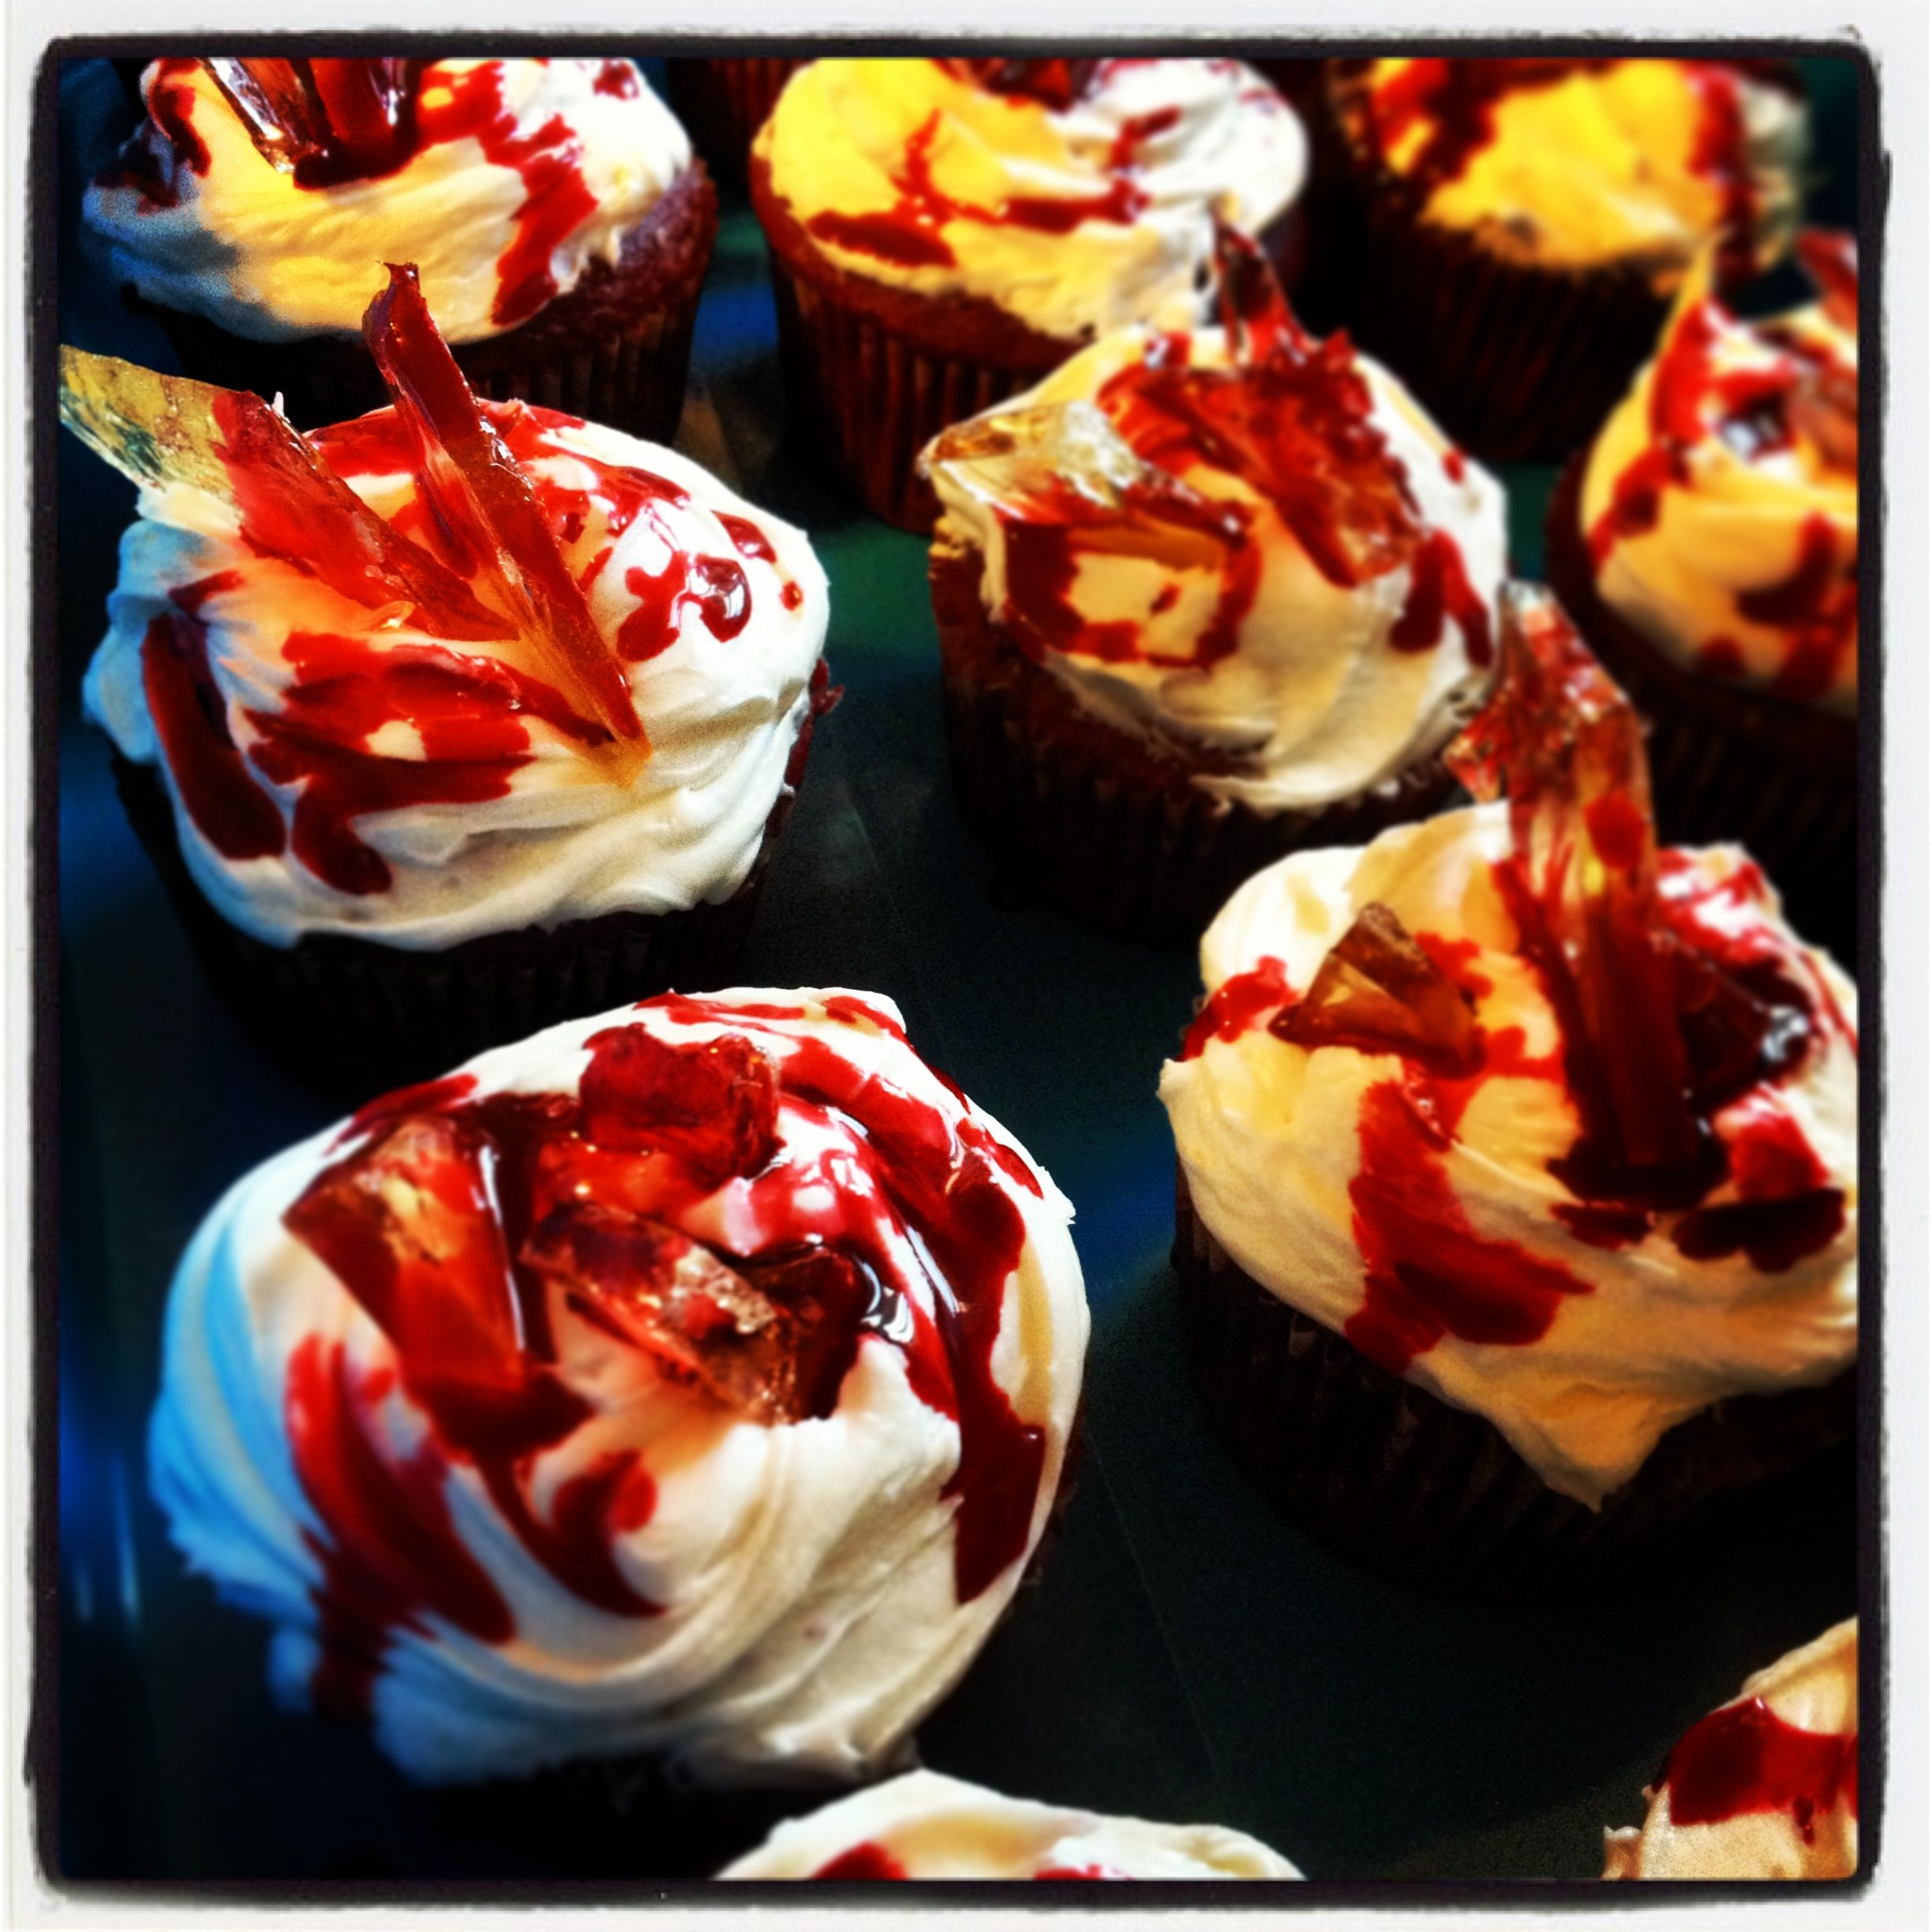 Happy Bloody Dexter Birthday! Red velvet cupcakes with marshmallow frosting, decorated with sugar glass, and corn syrup/cornstarch blood.